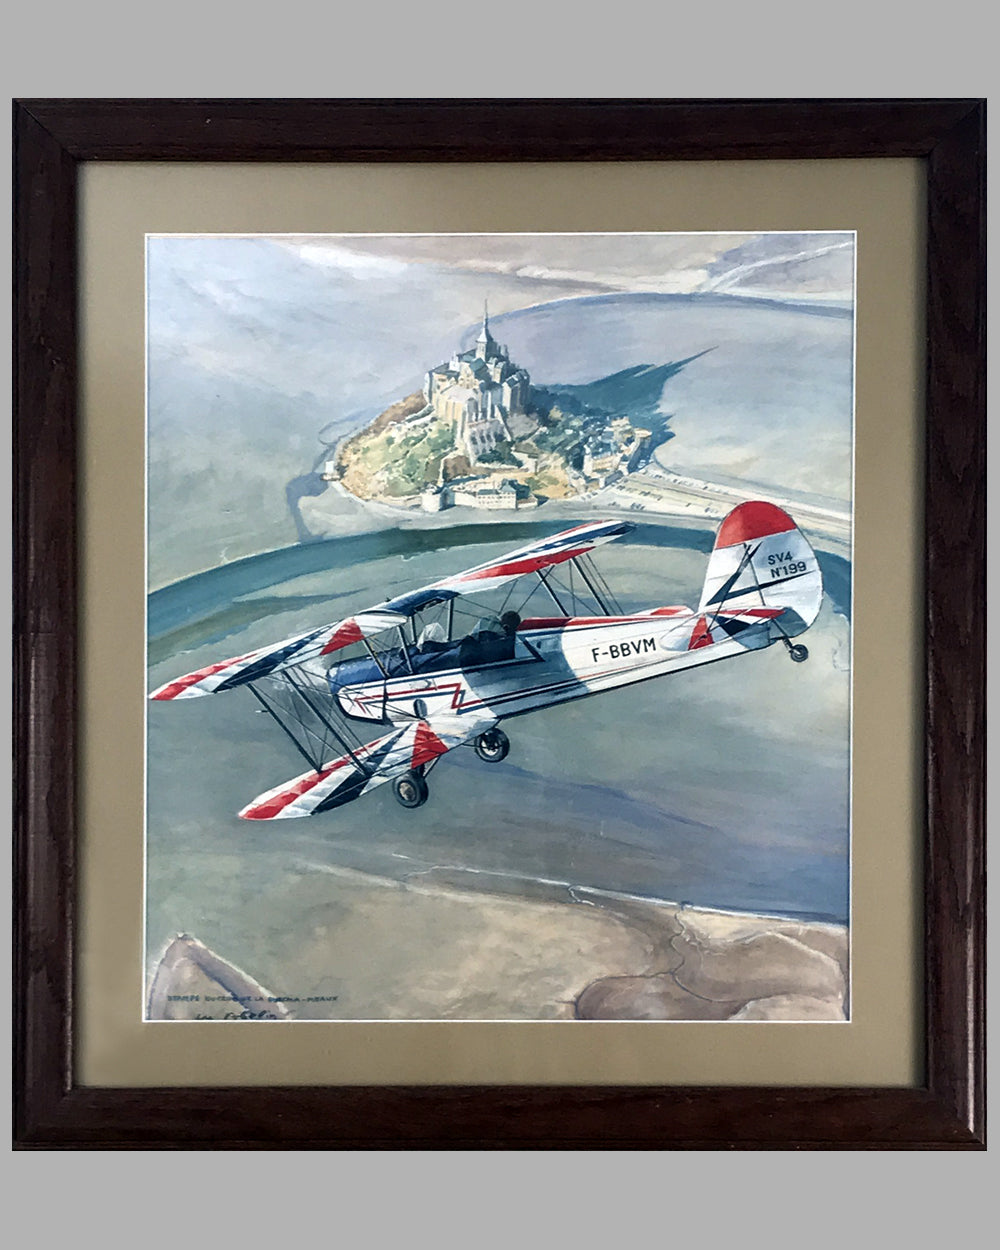 Stampe du Club de la Snecma-Meaux watercolor painting on board by Abelin